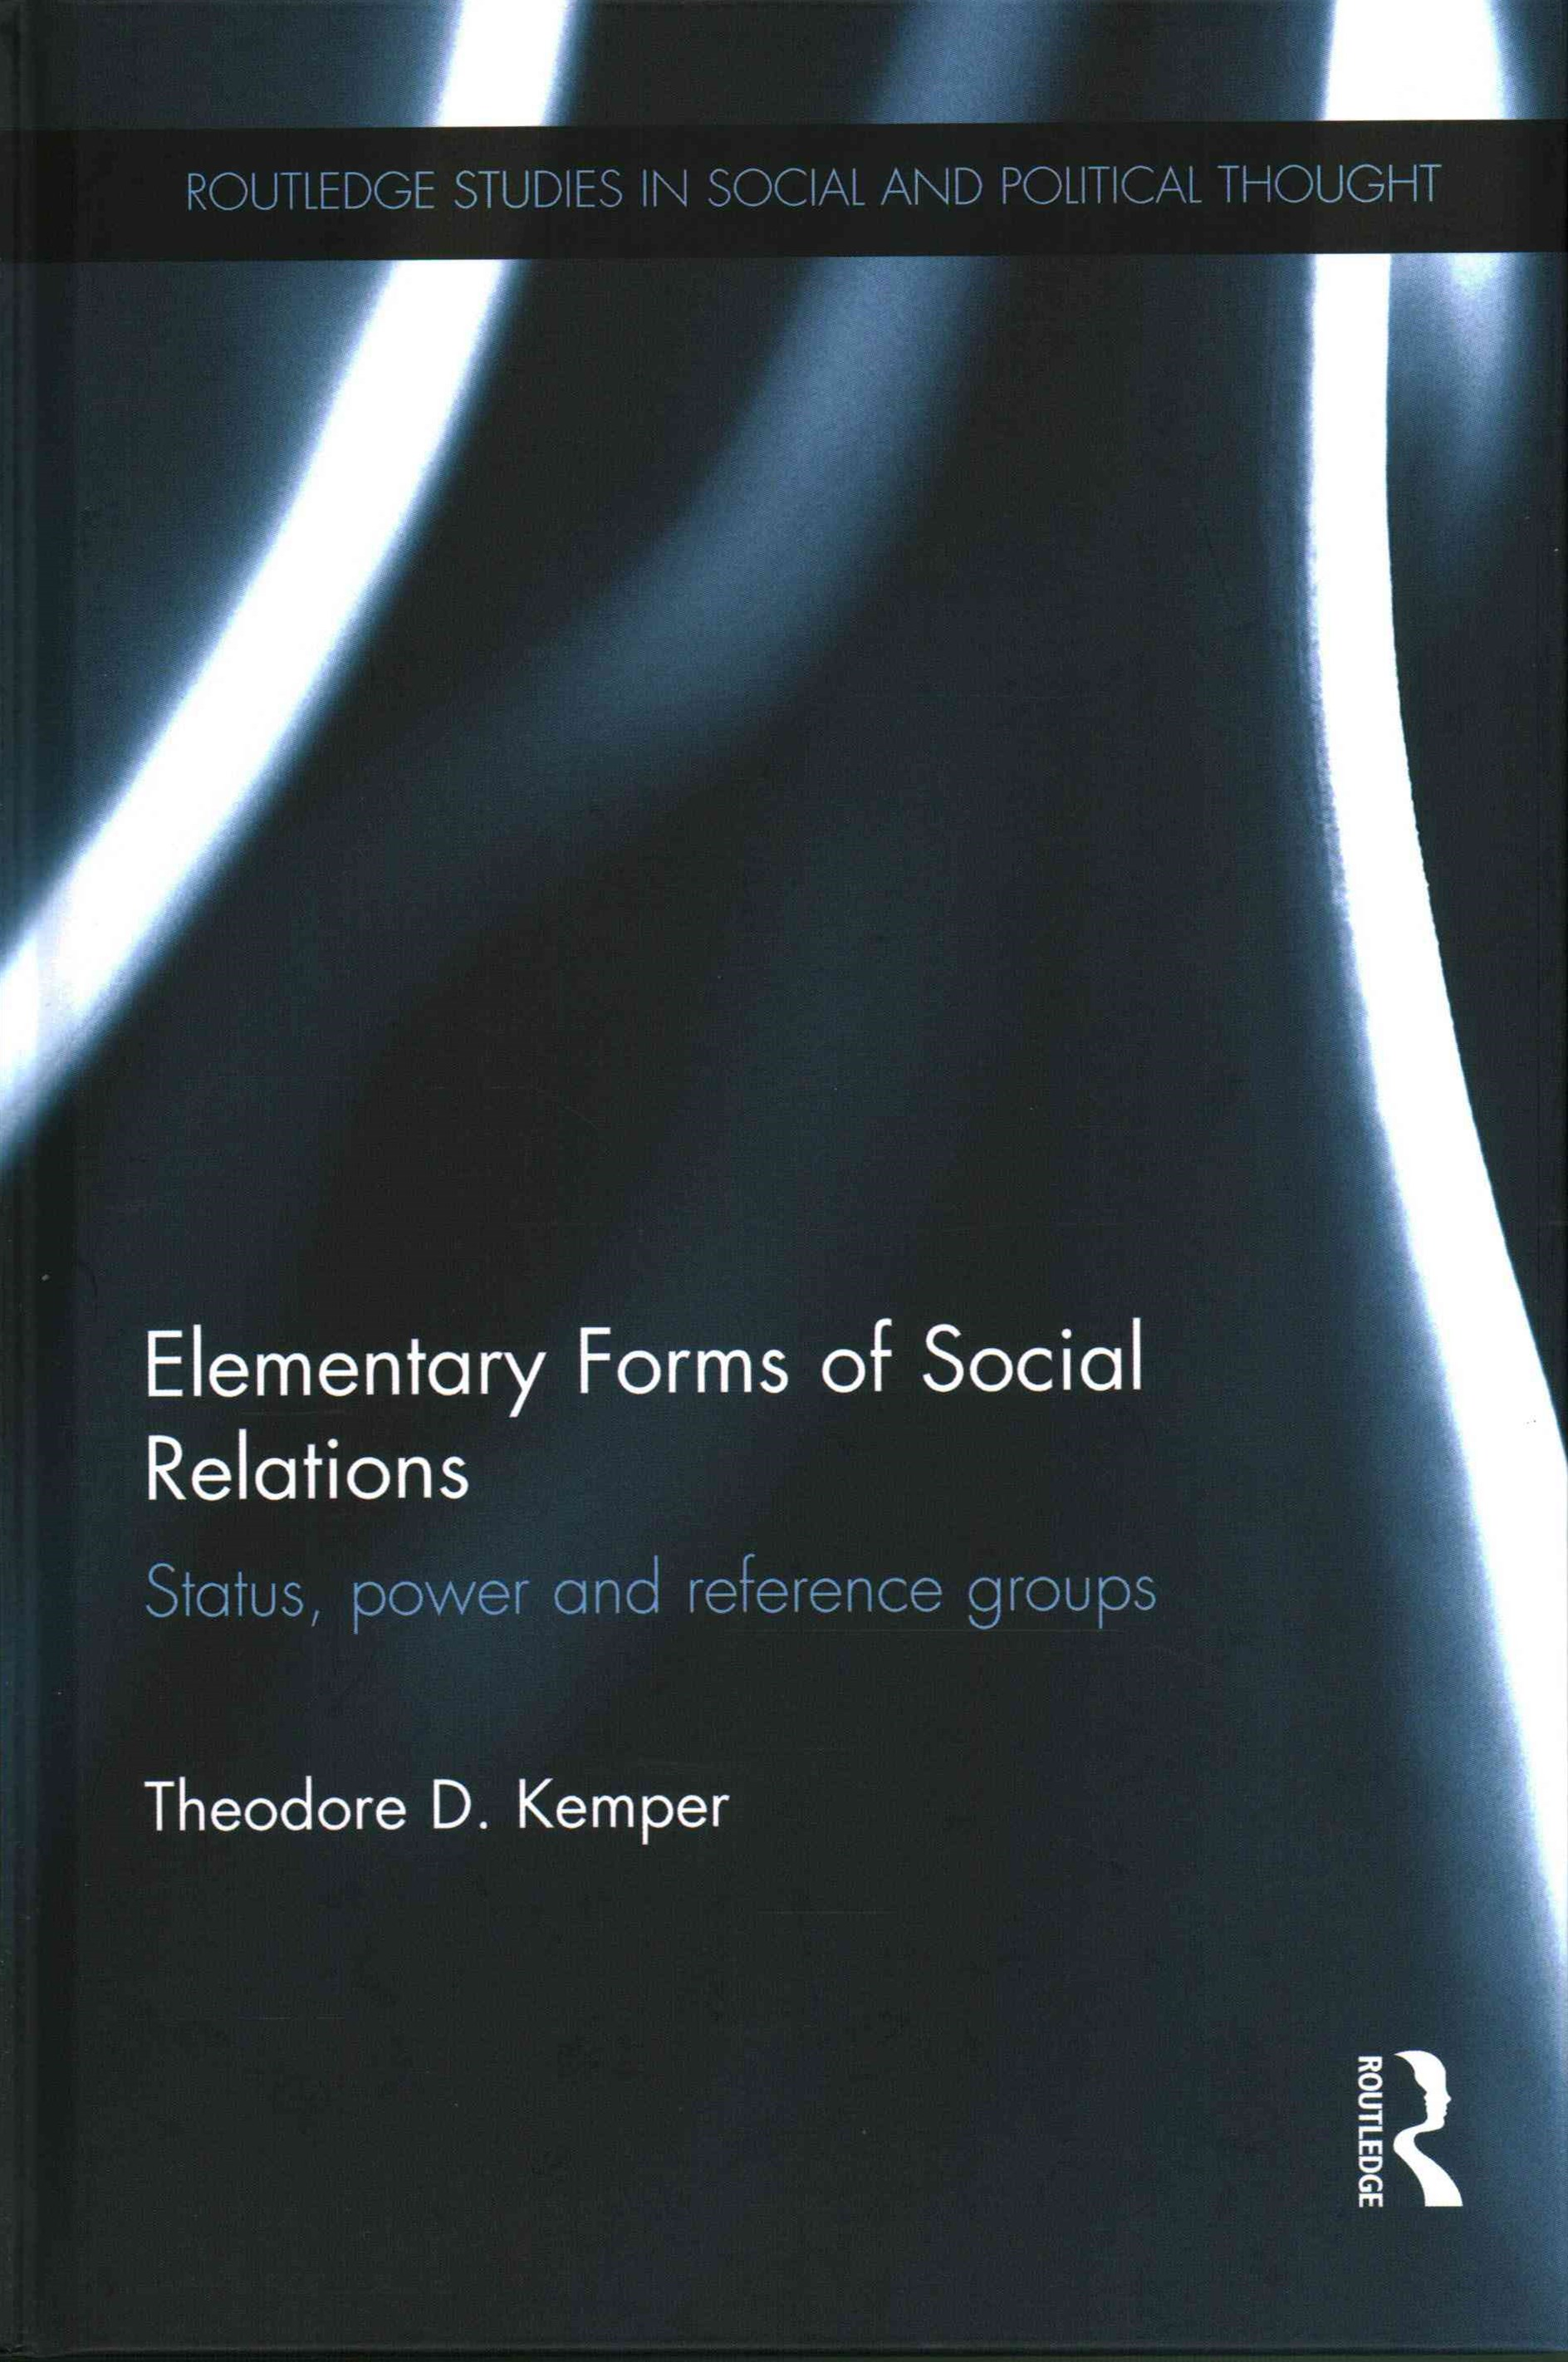 Elementary Forms of Social Relations